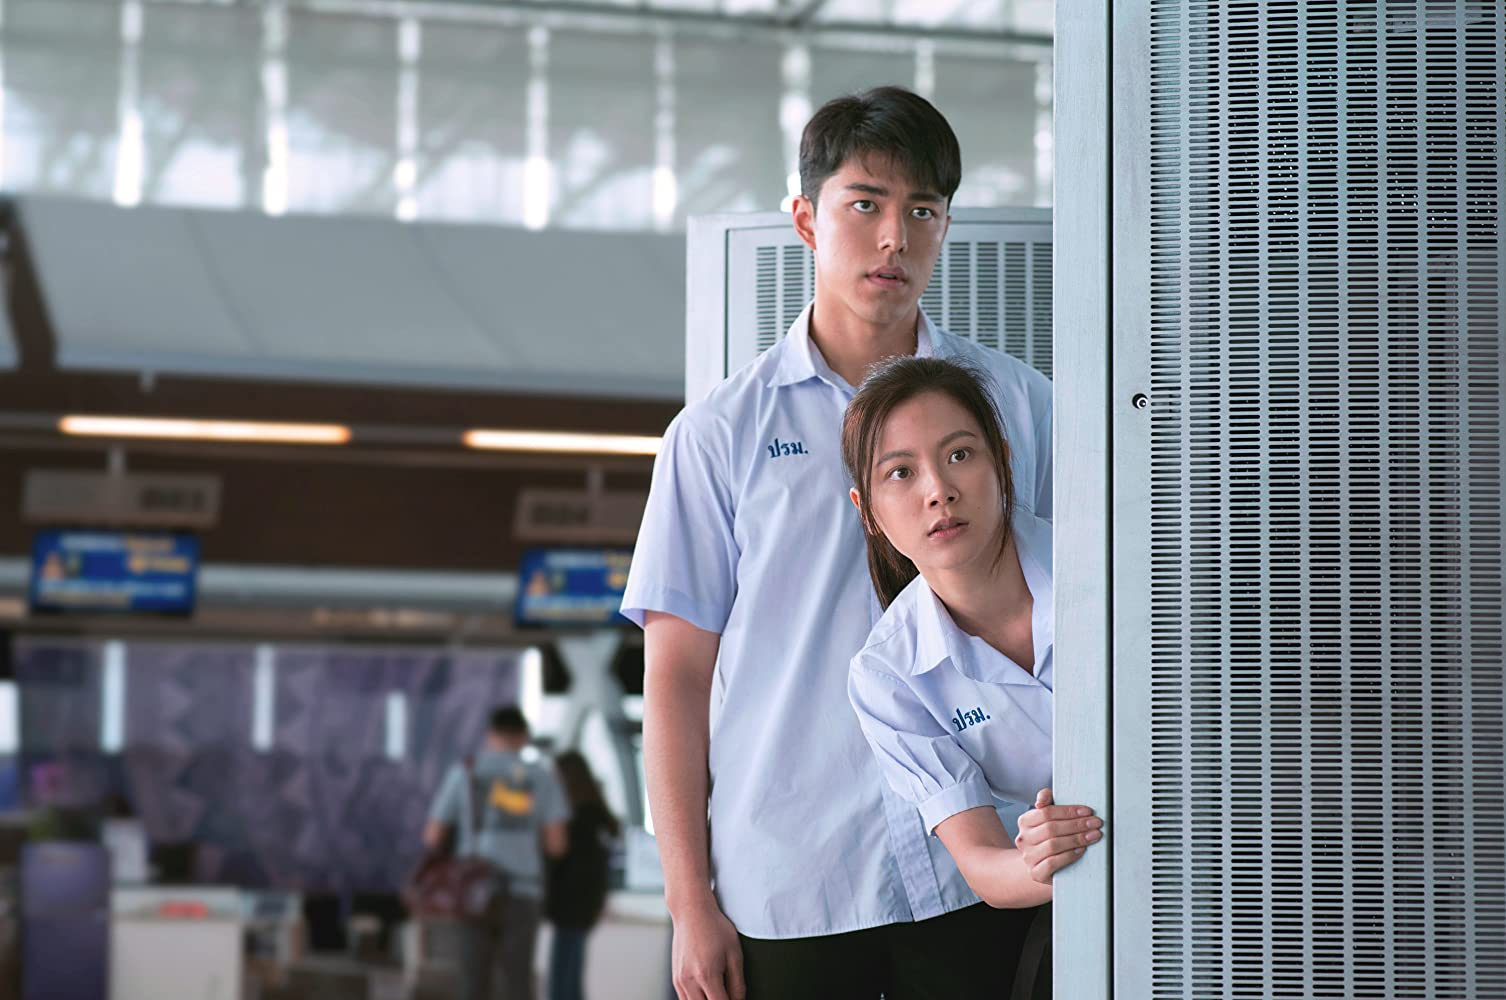 Naphat 'Nine' Siangsomboon and Pimchanok 'Baifern' Luevisadpaibul in Friend Zone (2019)